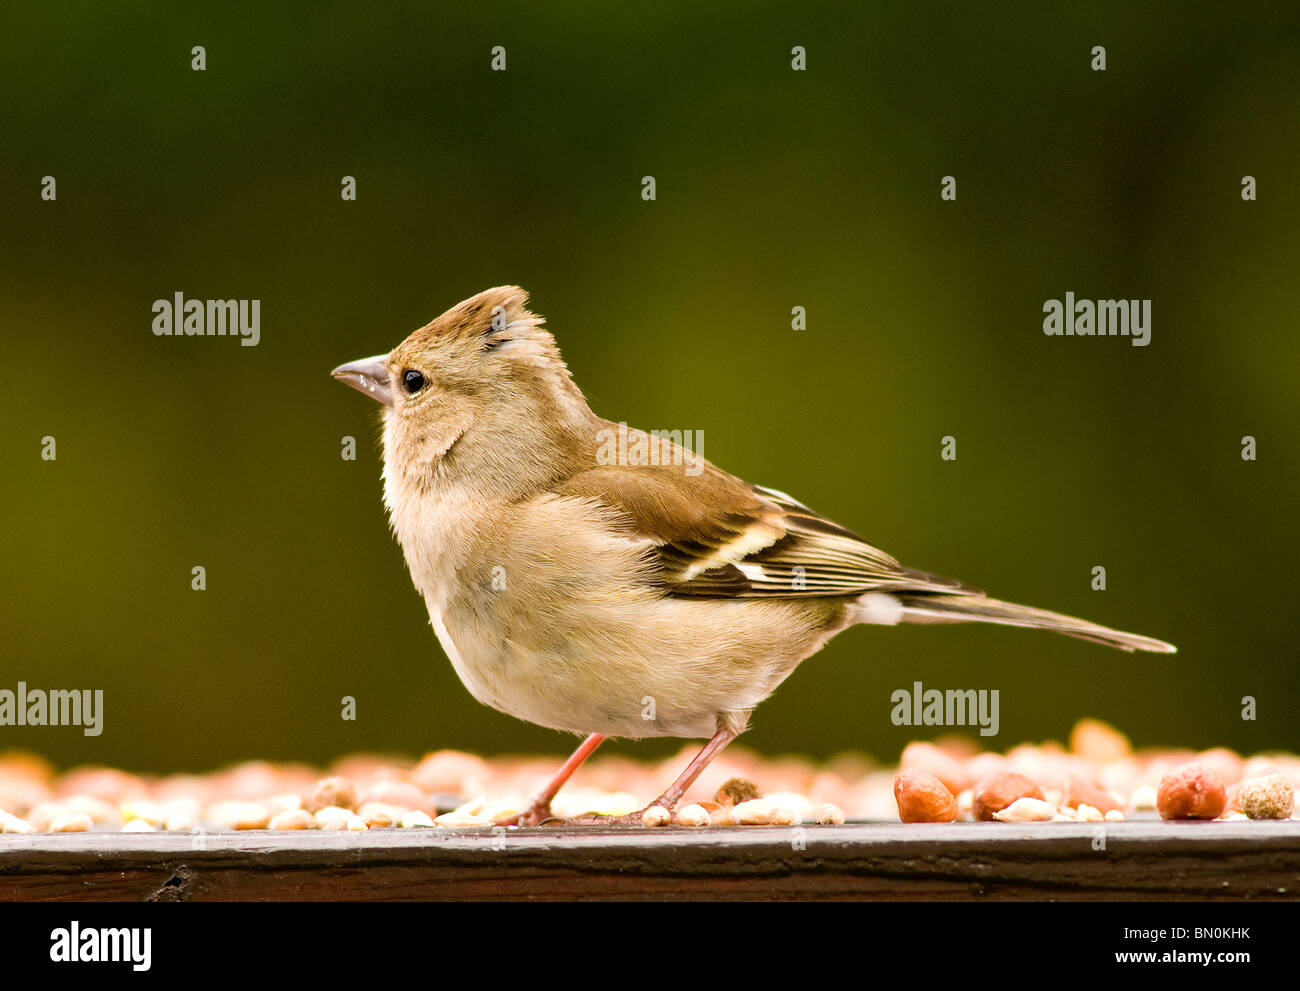 A female chaffinch on a bird table - Stock Image